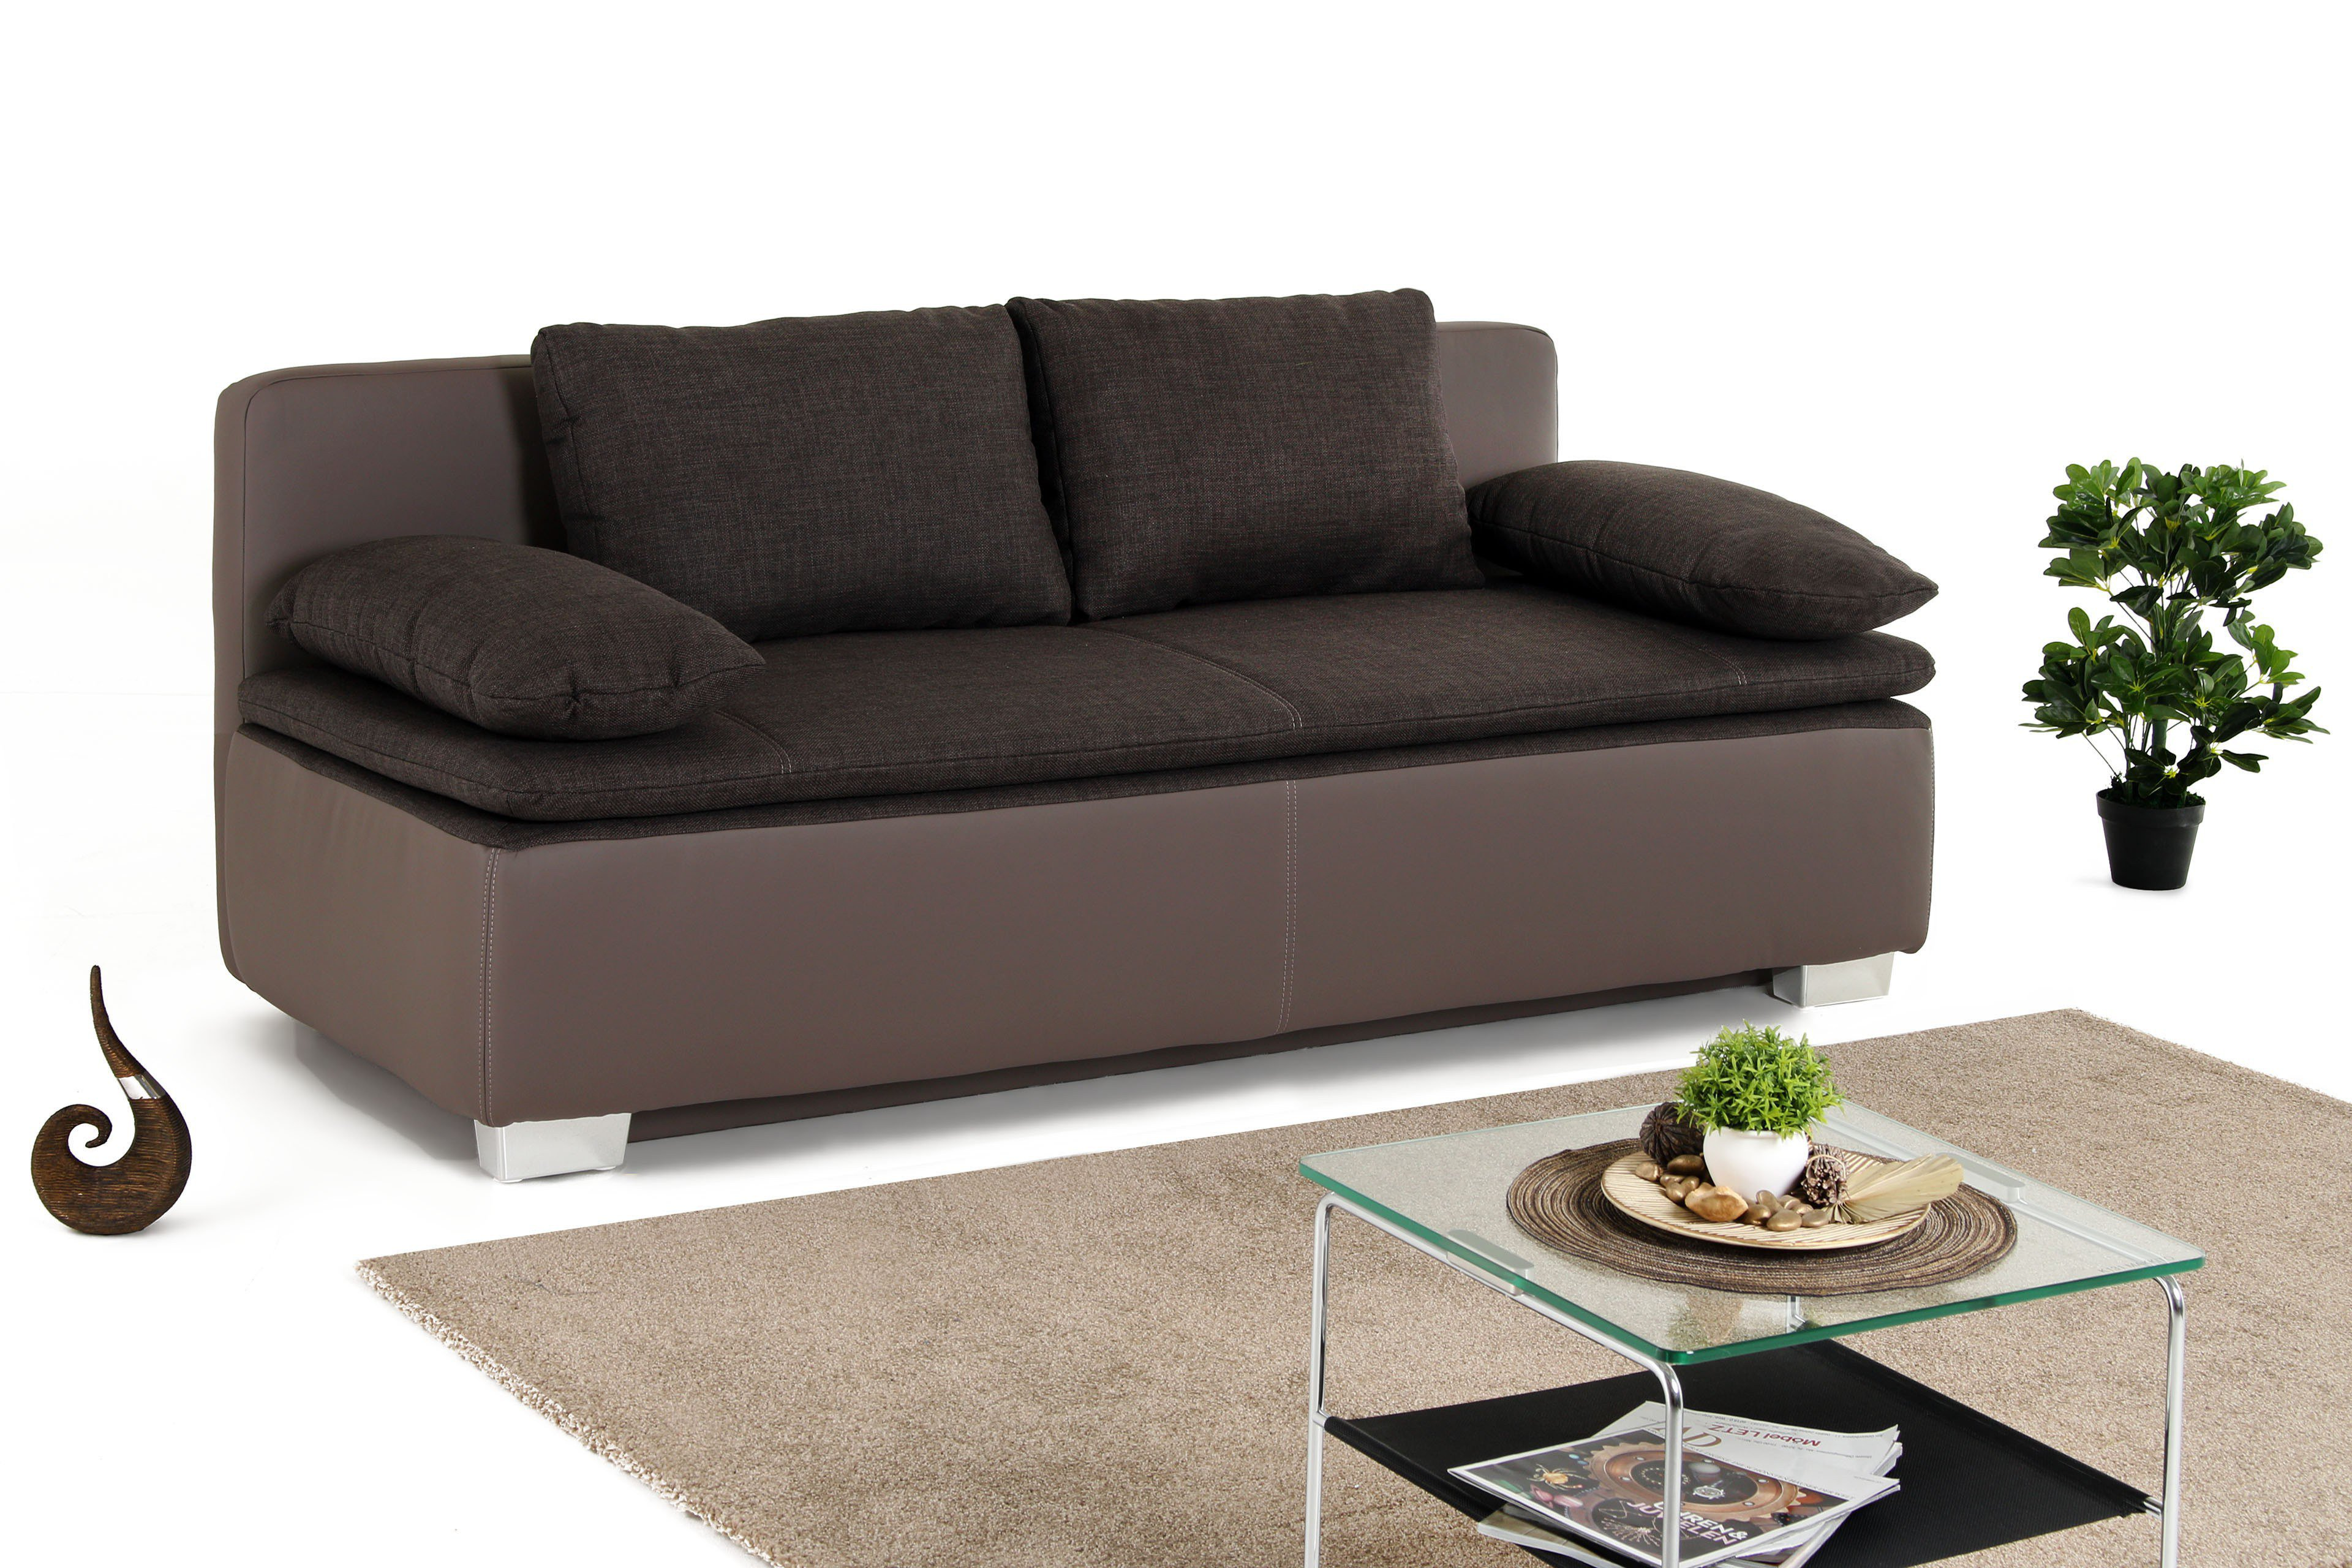 dauerschlafsofa duett in braun von jockenh fer m bel letz ihr online shop. Black Bedroom Furniture Sets. Home Design Ideas